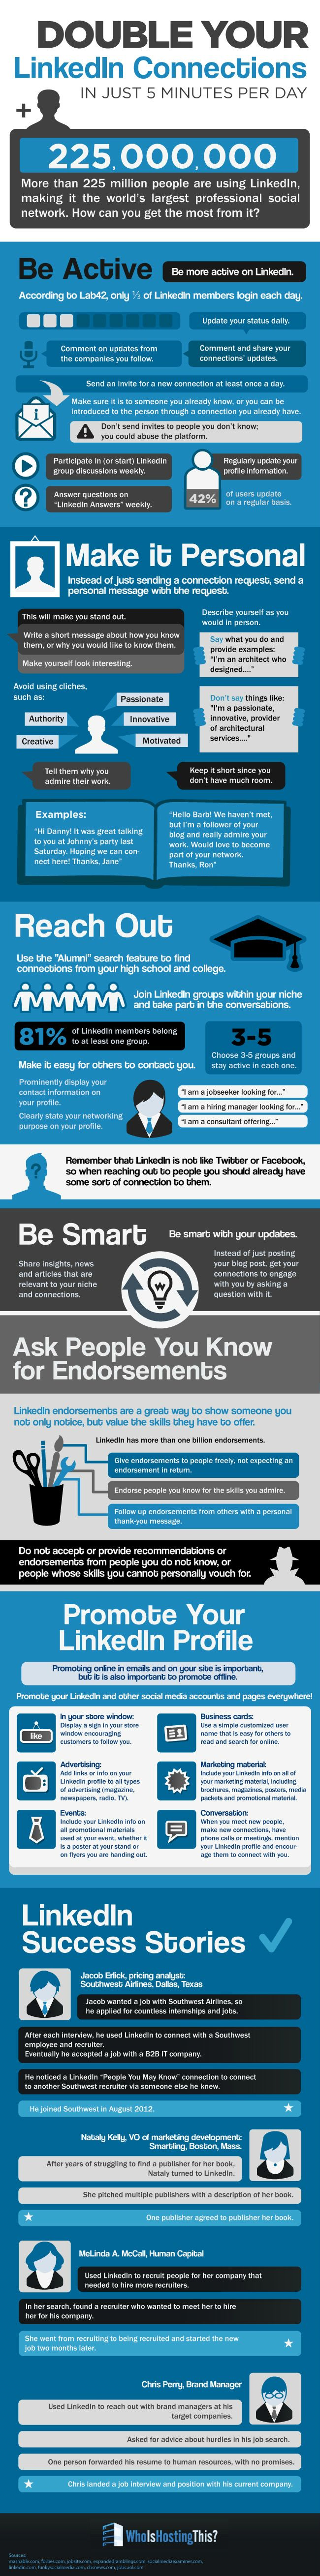 double-your-linkedin-connections-in-just-5-minutes-a-day-infographic